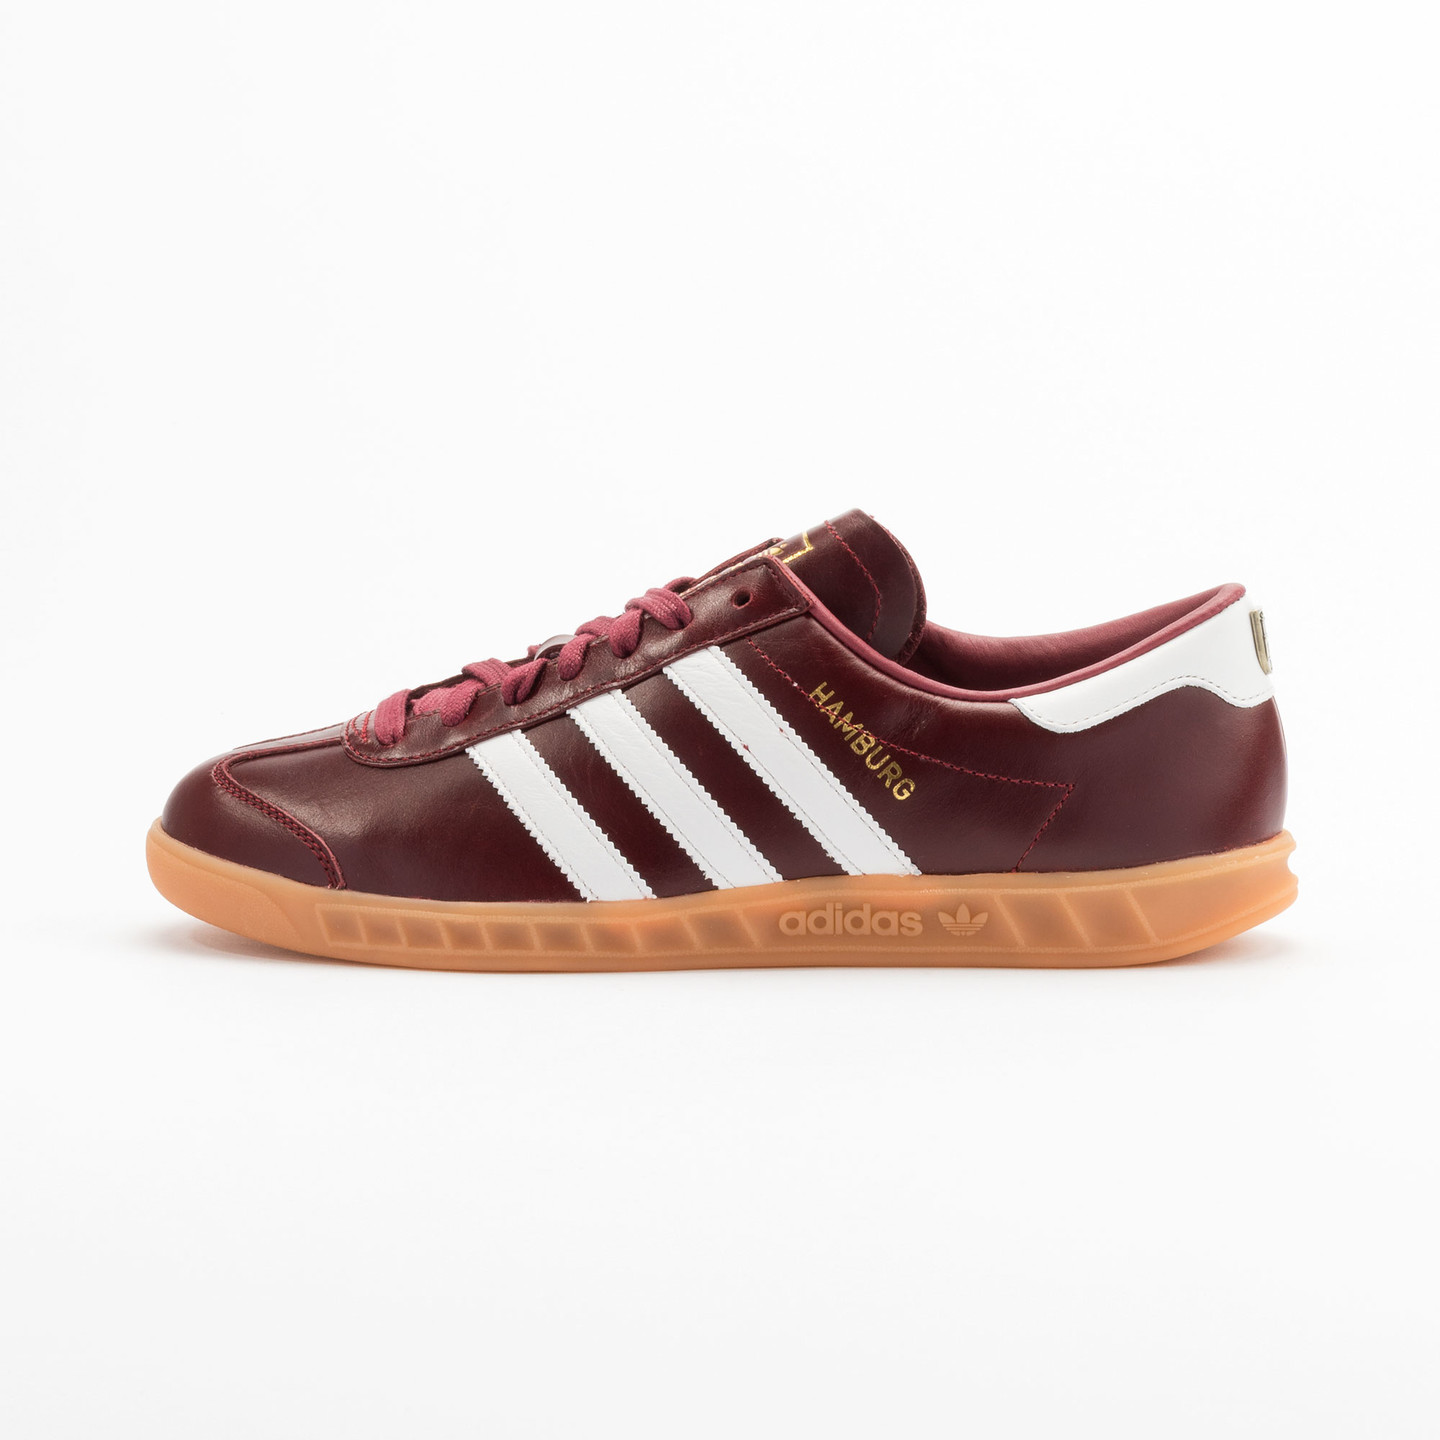 Adidas Hamburg - Made in Germany Burgundy / White / Gold / Gum S31603-44